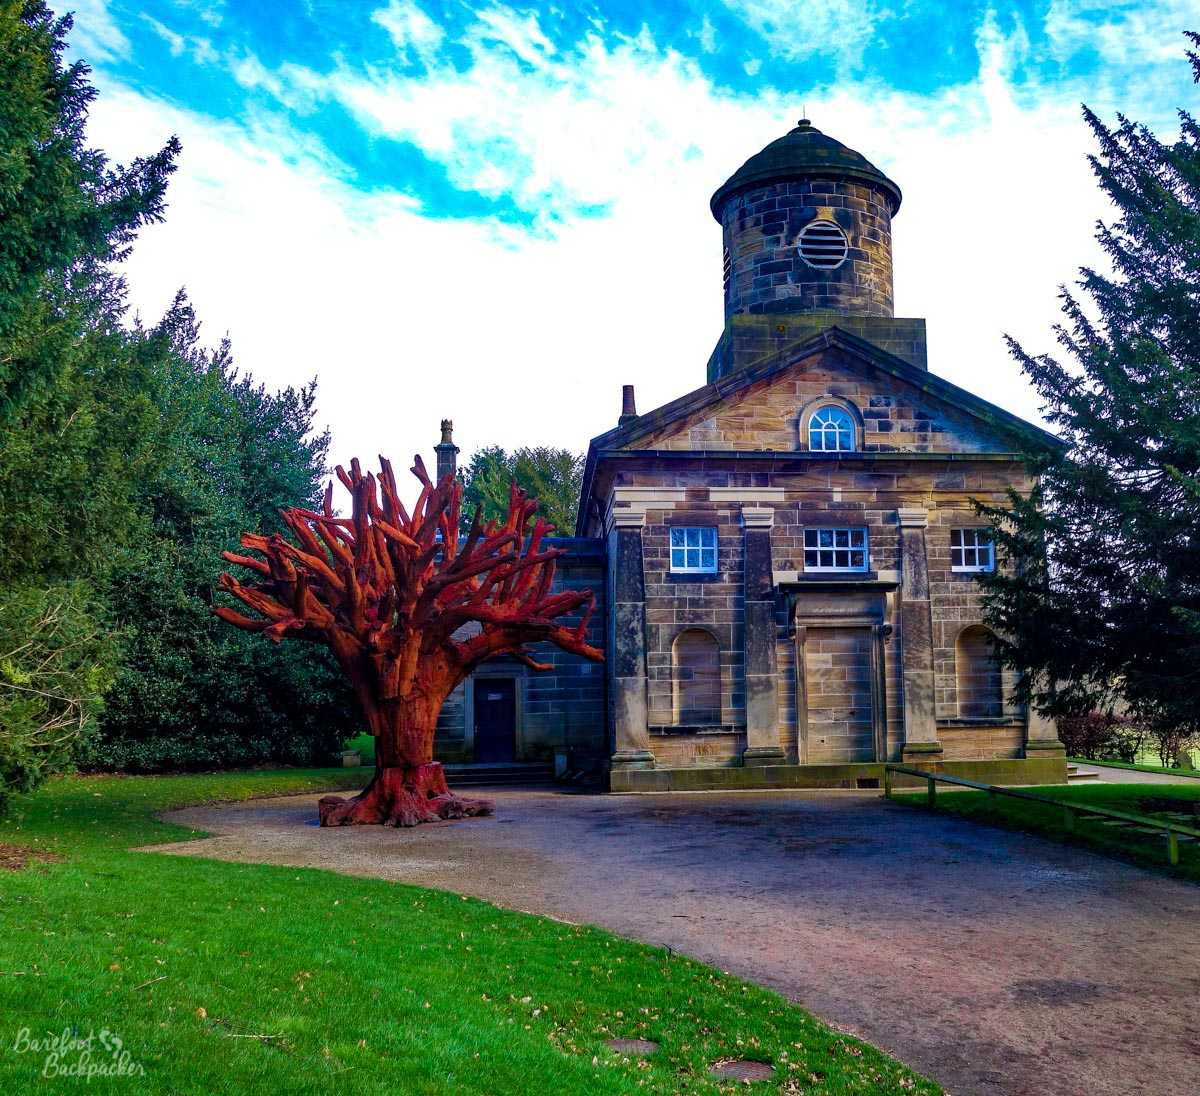 St Bartholomew's Chapel and Iron Tree, Yorkshire Sculpture Park